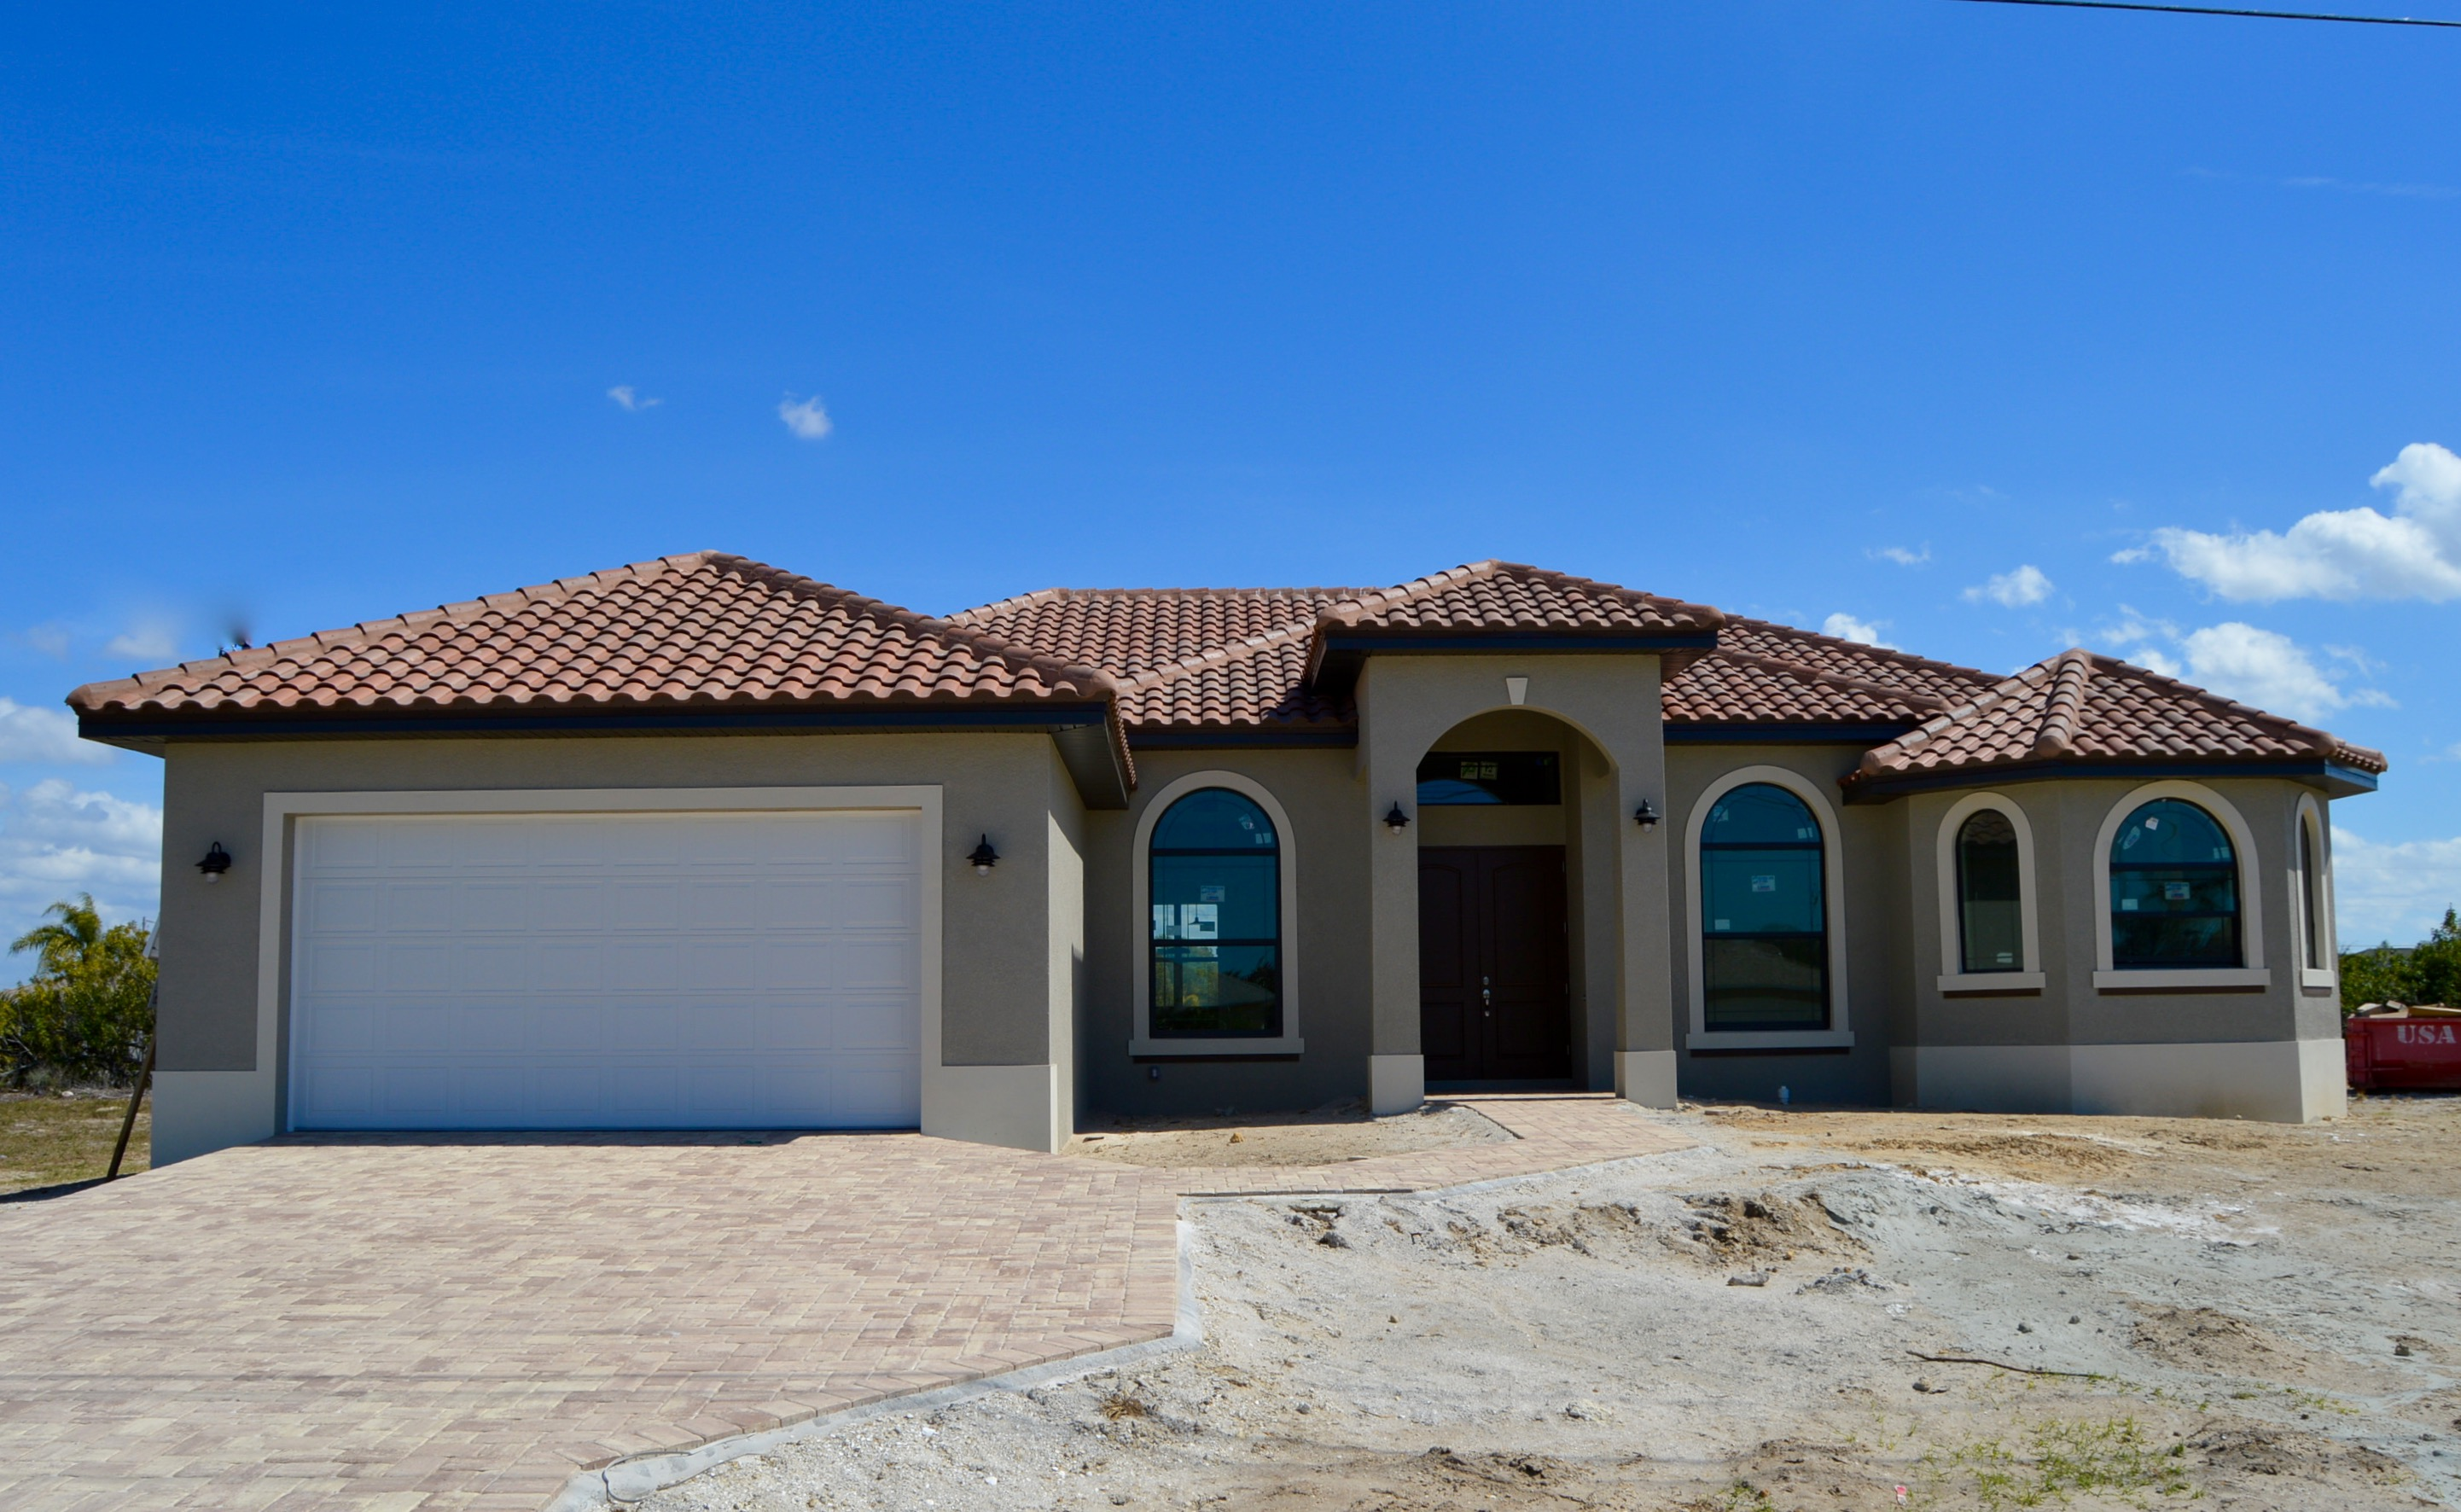 Cape Coral Florida New Construction Real Estate, New Homes Cape Coral Florida, New Homes Southwest Florida, New Homes Florida, New Waterfront Homes Cape Coral Florida